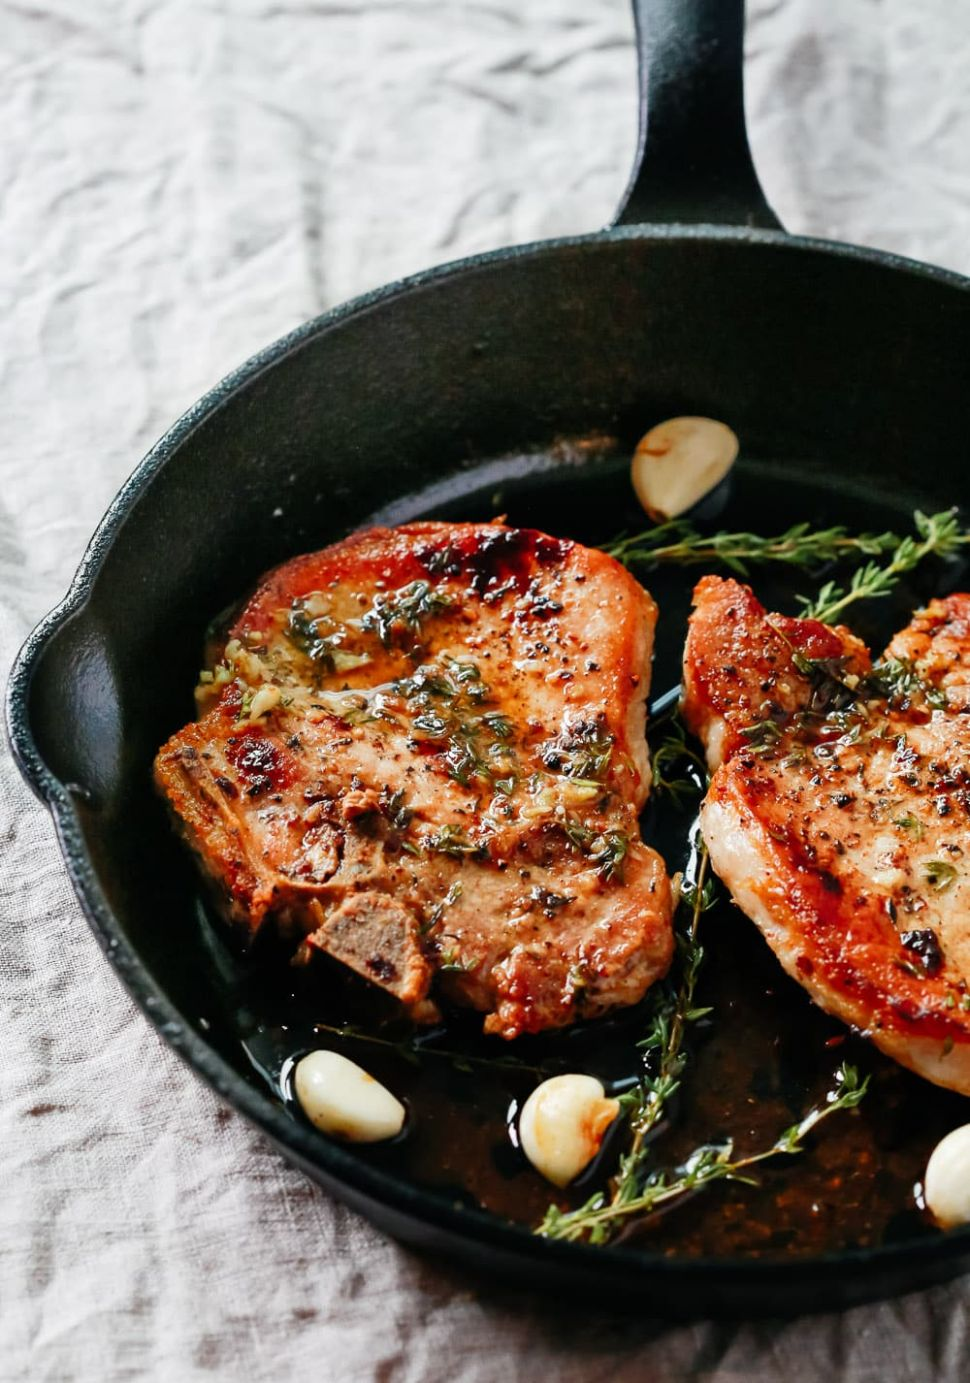 Garlic Butter Baked Pork Chops - Recipes Pork Loin Chops